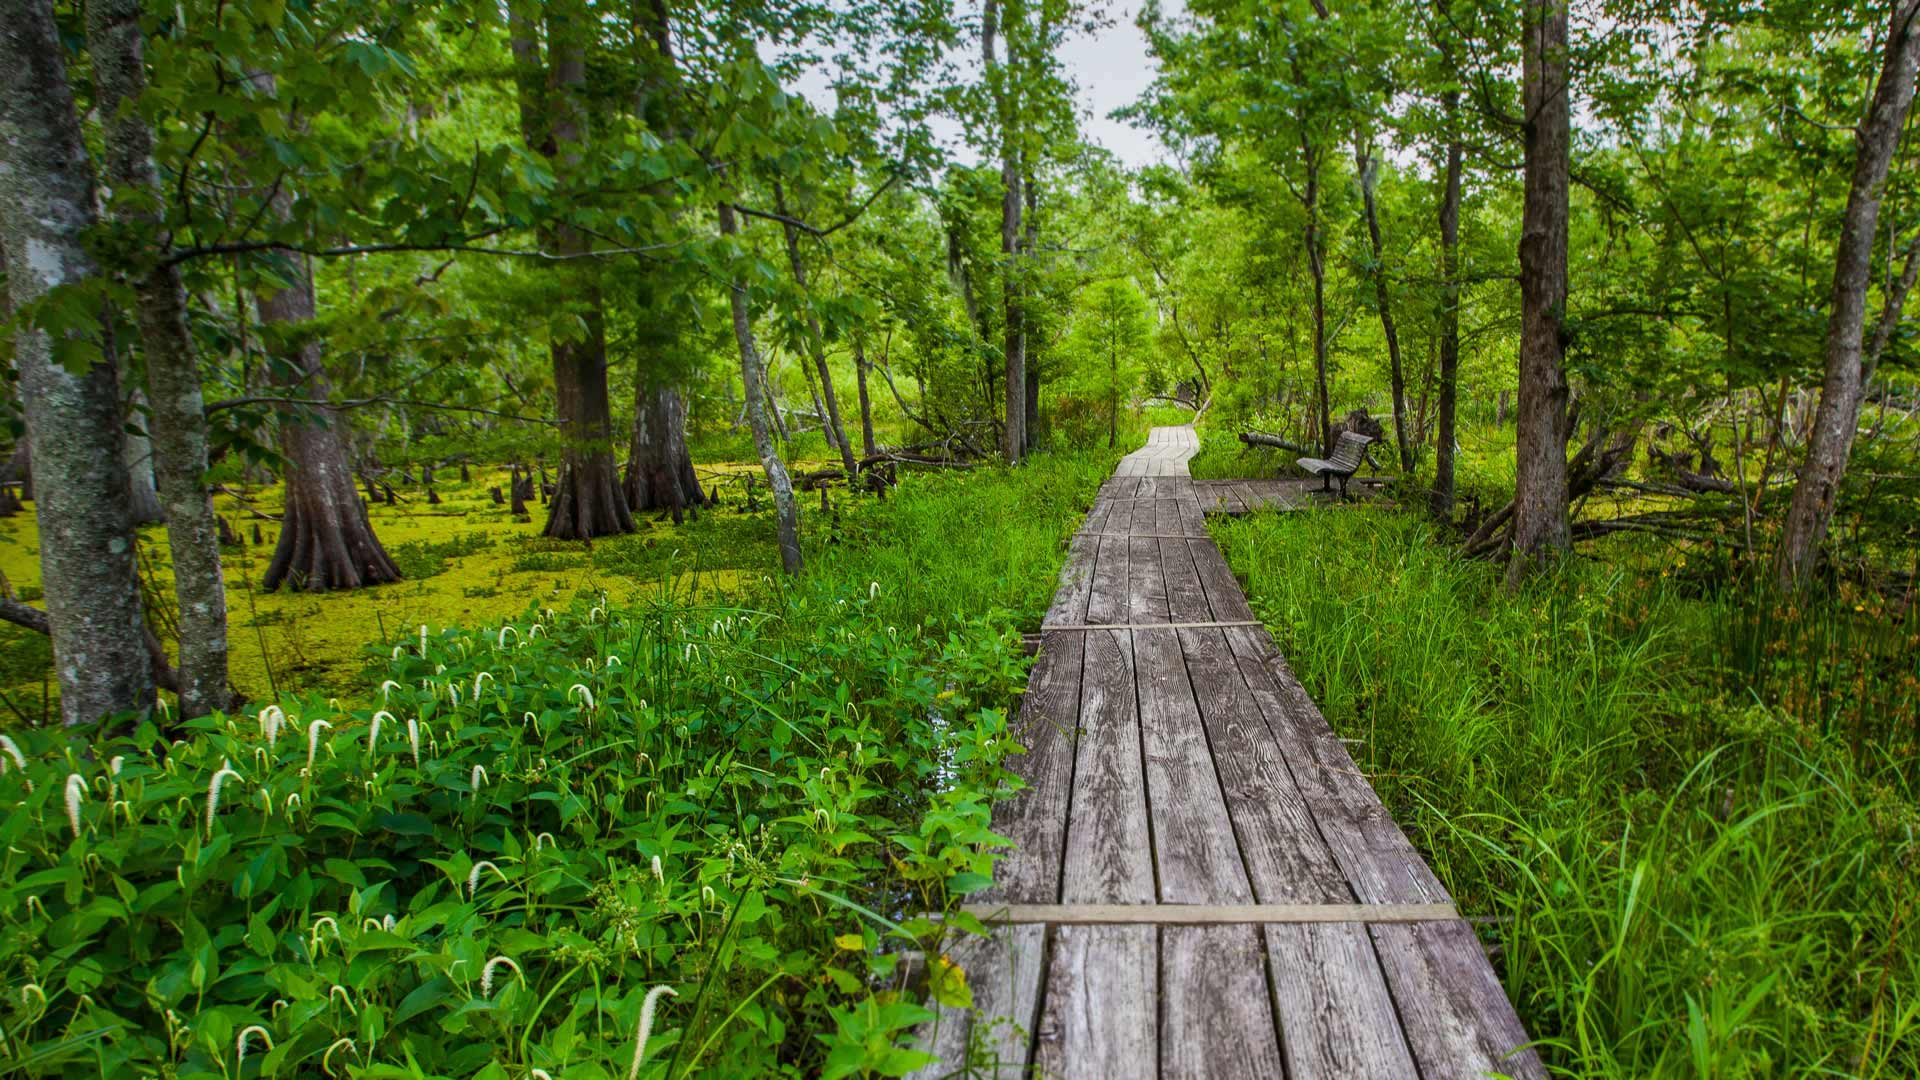 Barataria Trail, part of Jean Lafitte National Historical Park, Louisiana (© Karine Aigner/Tandem Stills + Motion)